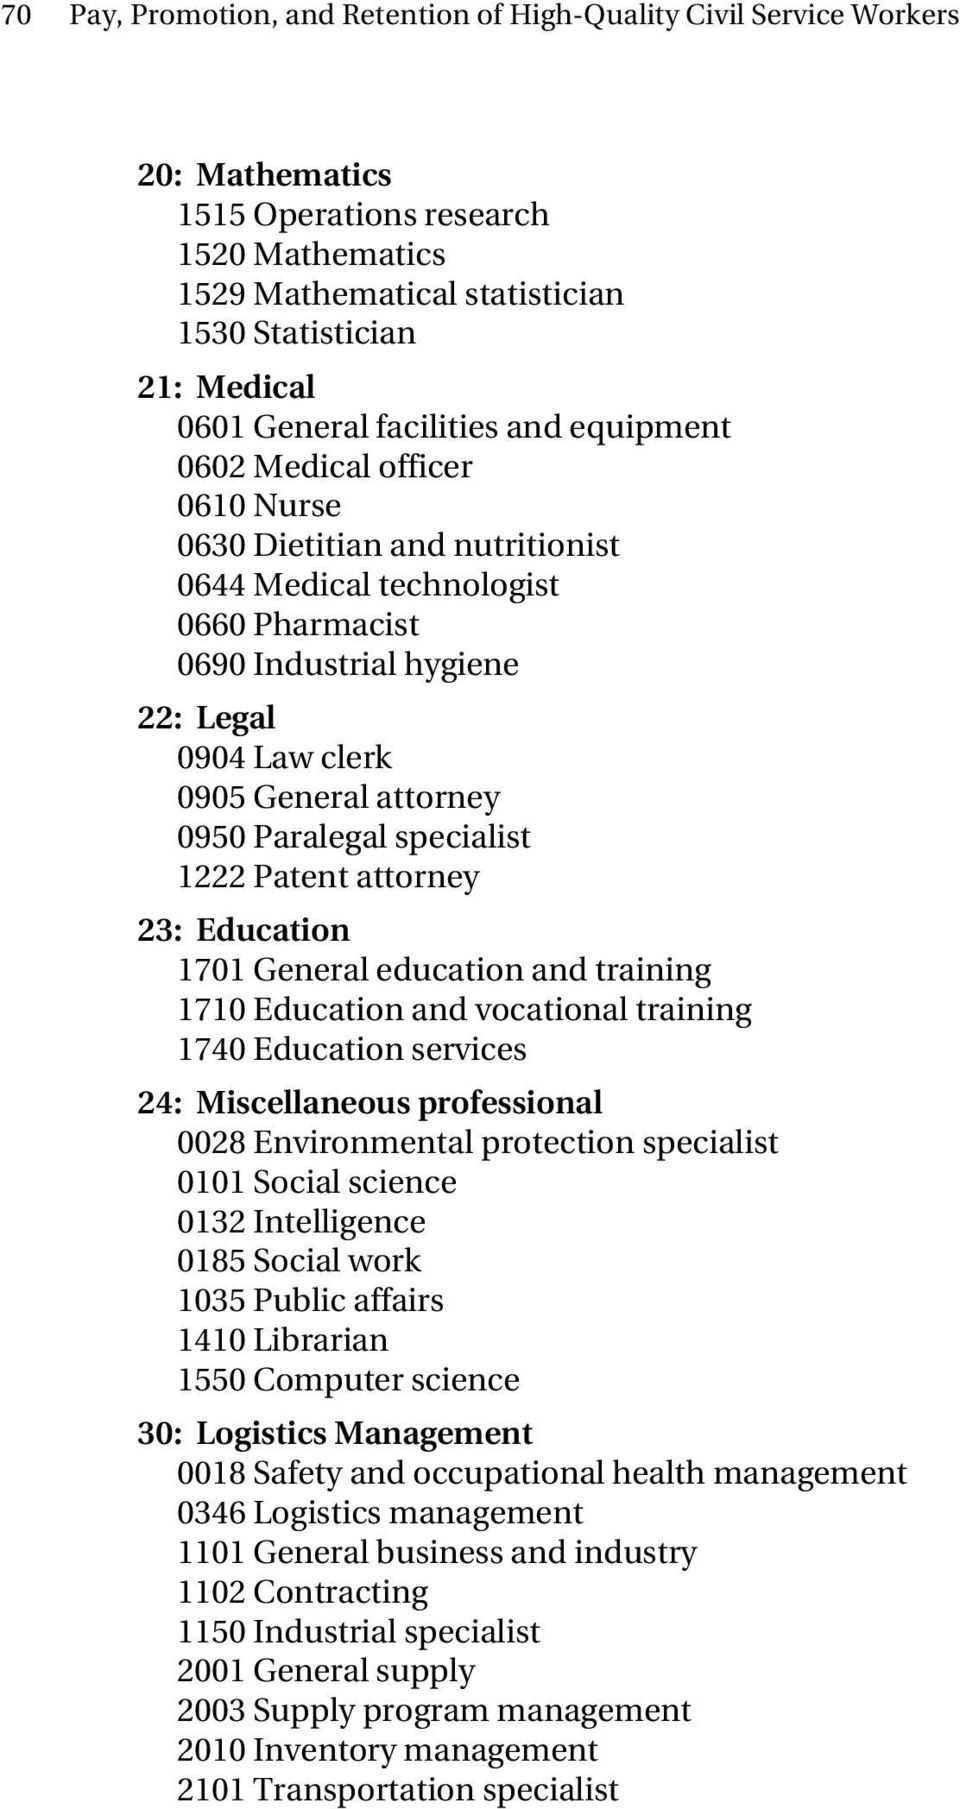 General attorney 0950 Paralegal specialist 1222 Patent attorney 23: Education 1701 General education and training 1710 Education and vocational training 1740 Education services 24: Miscellaneous